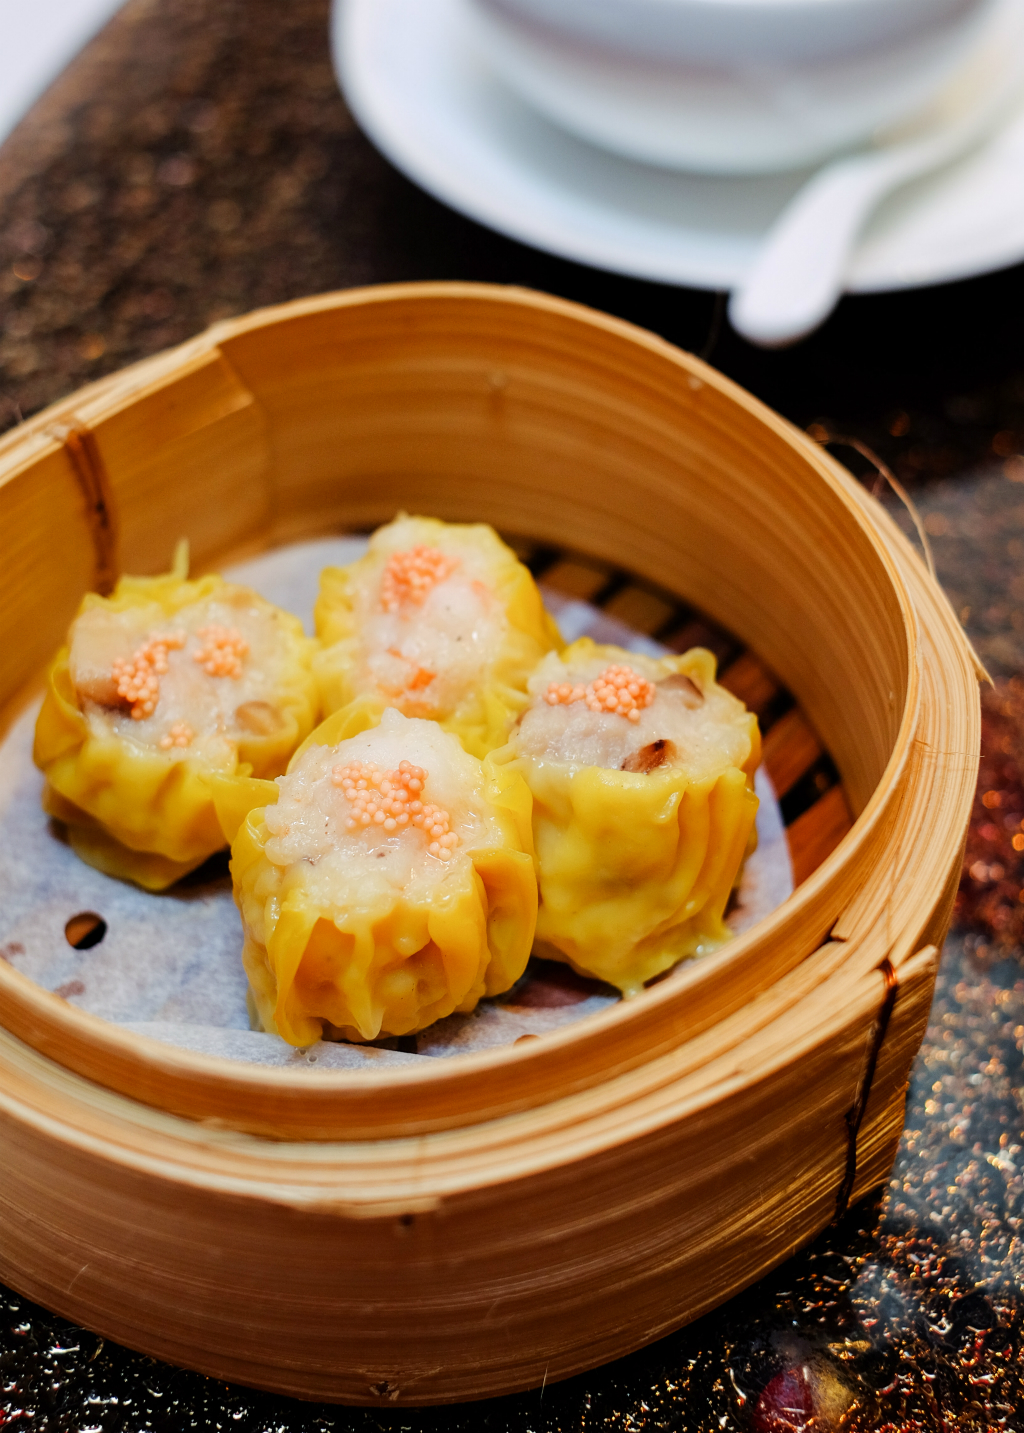 Shang Palace's dim sum culinary team